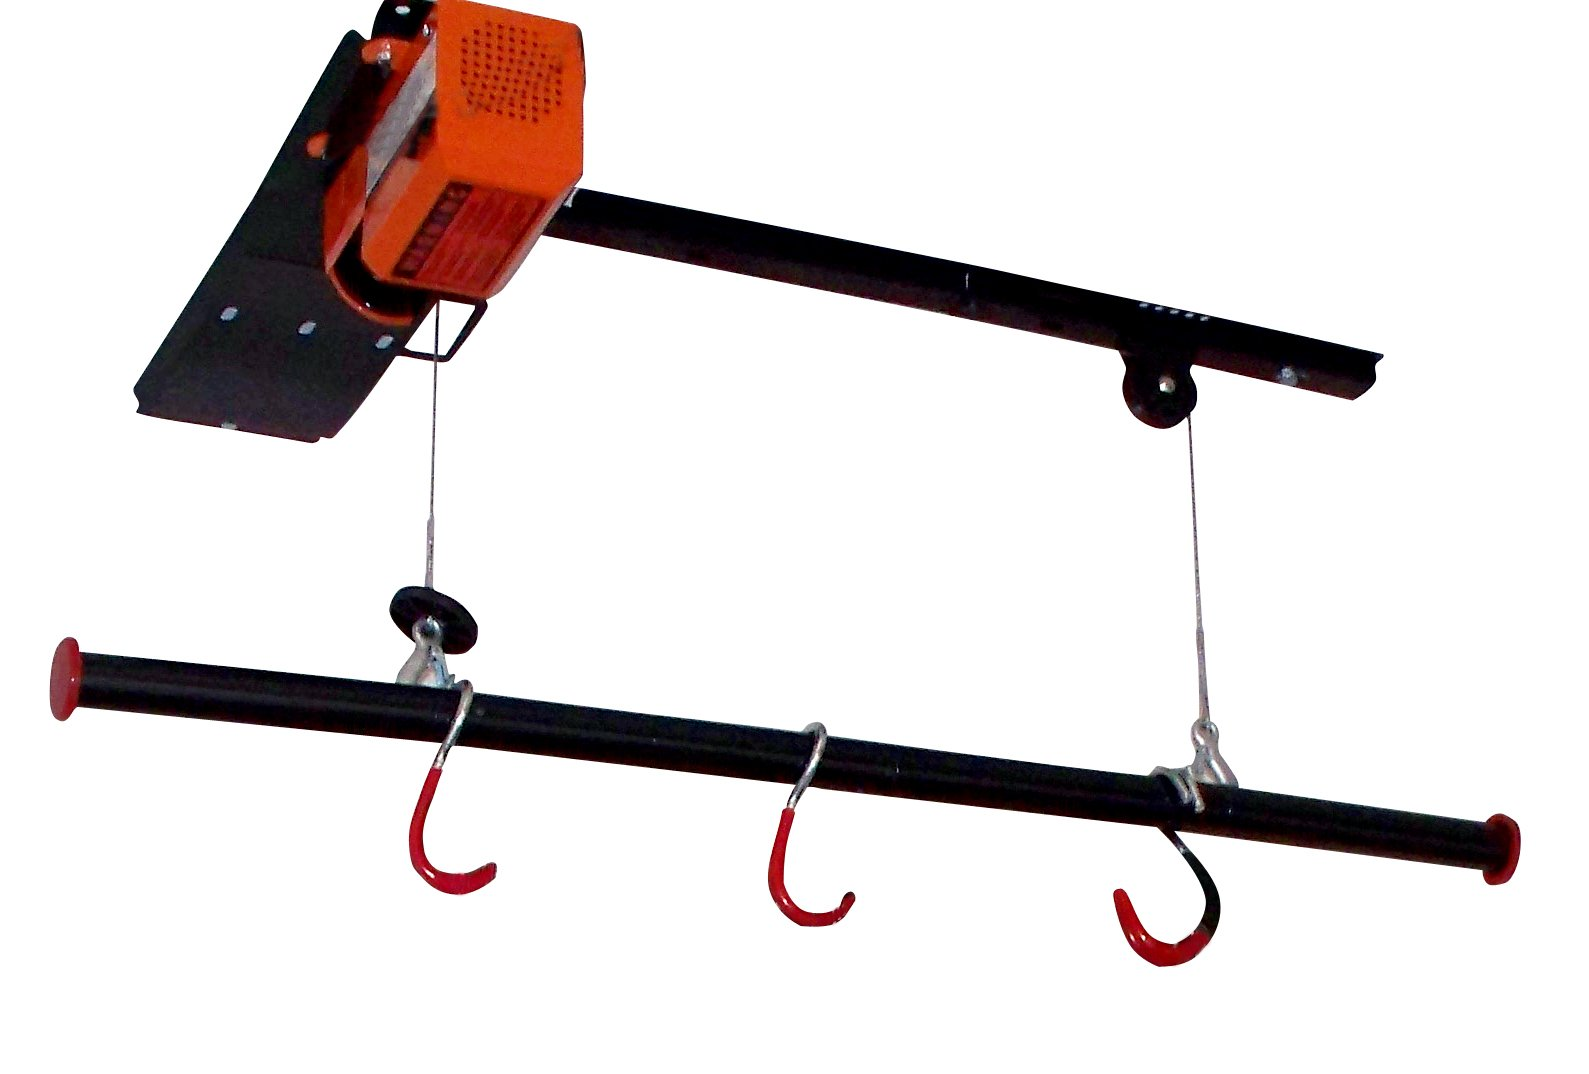 Garage Gator Motorized Electric Hoist Ggr 125 Buy Vbro Products Ggr2436ps Garage Gator Platform Accessory In